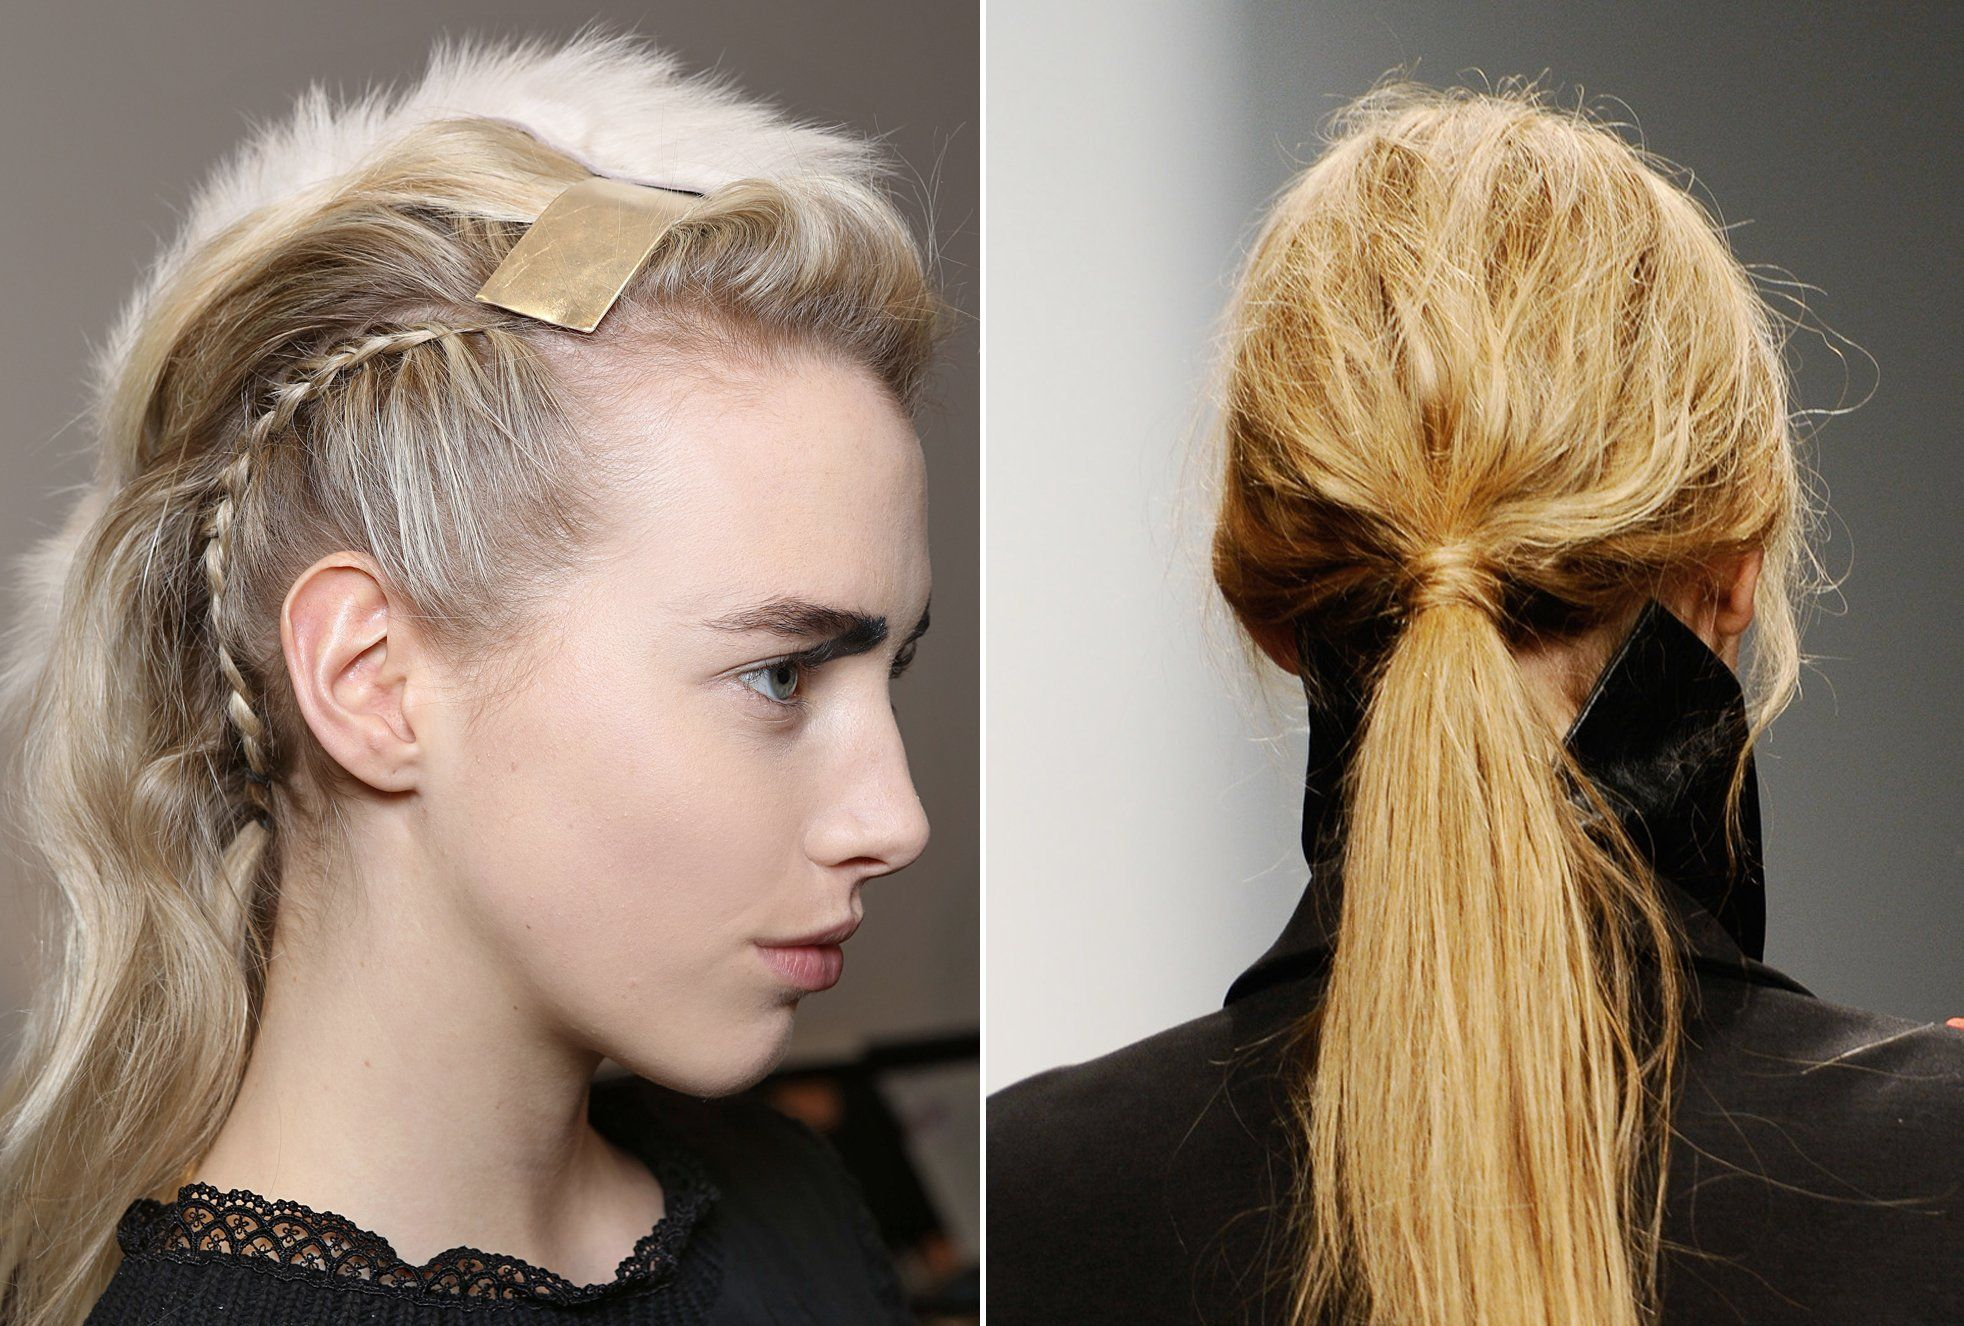 NYFW Hair Trends Twist oder Zopf